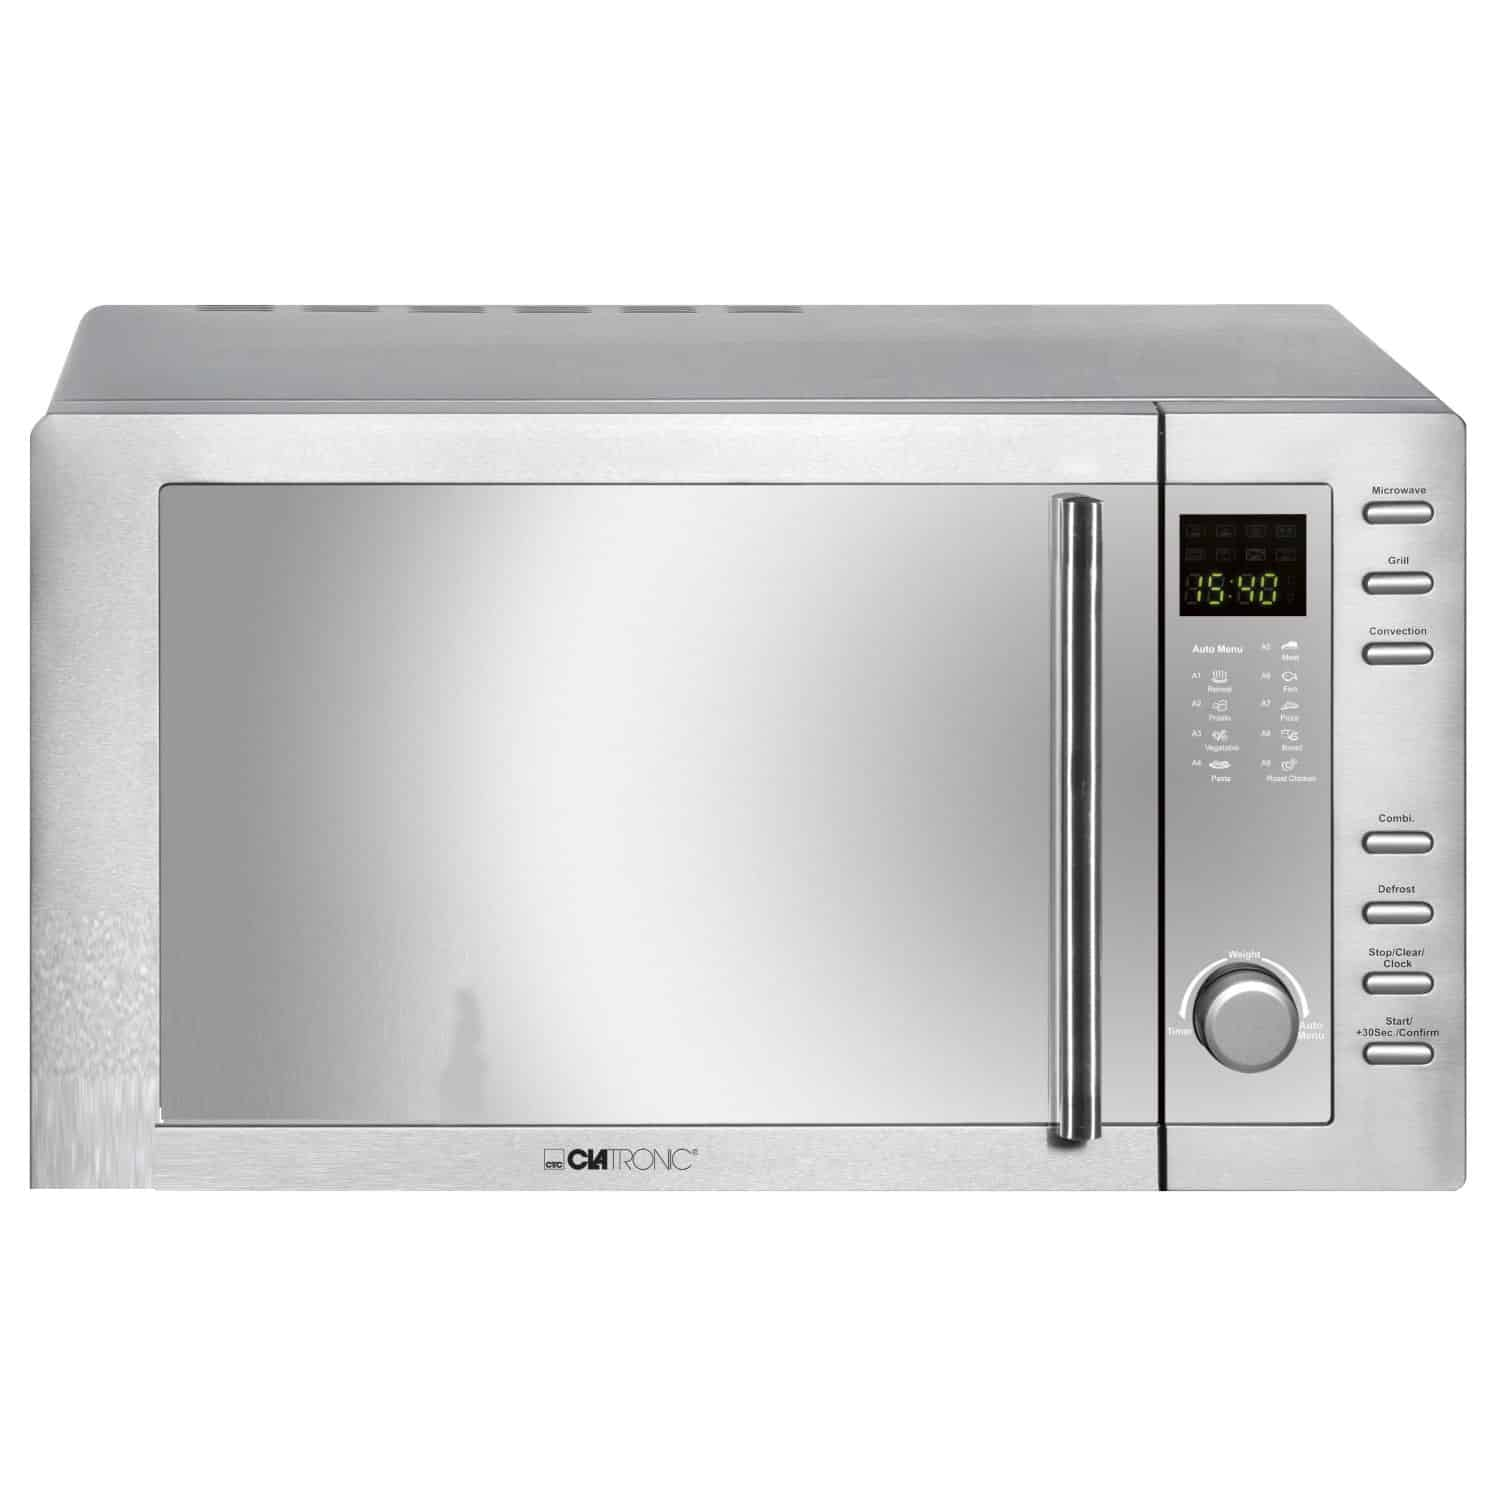 samsung convection microwave the range reviews mini backofen mit mikrowelle samsung ferrari. Black Bedroom Furniture Sets. Home Design Ideas